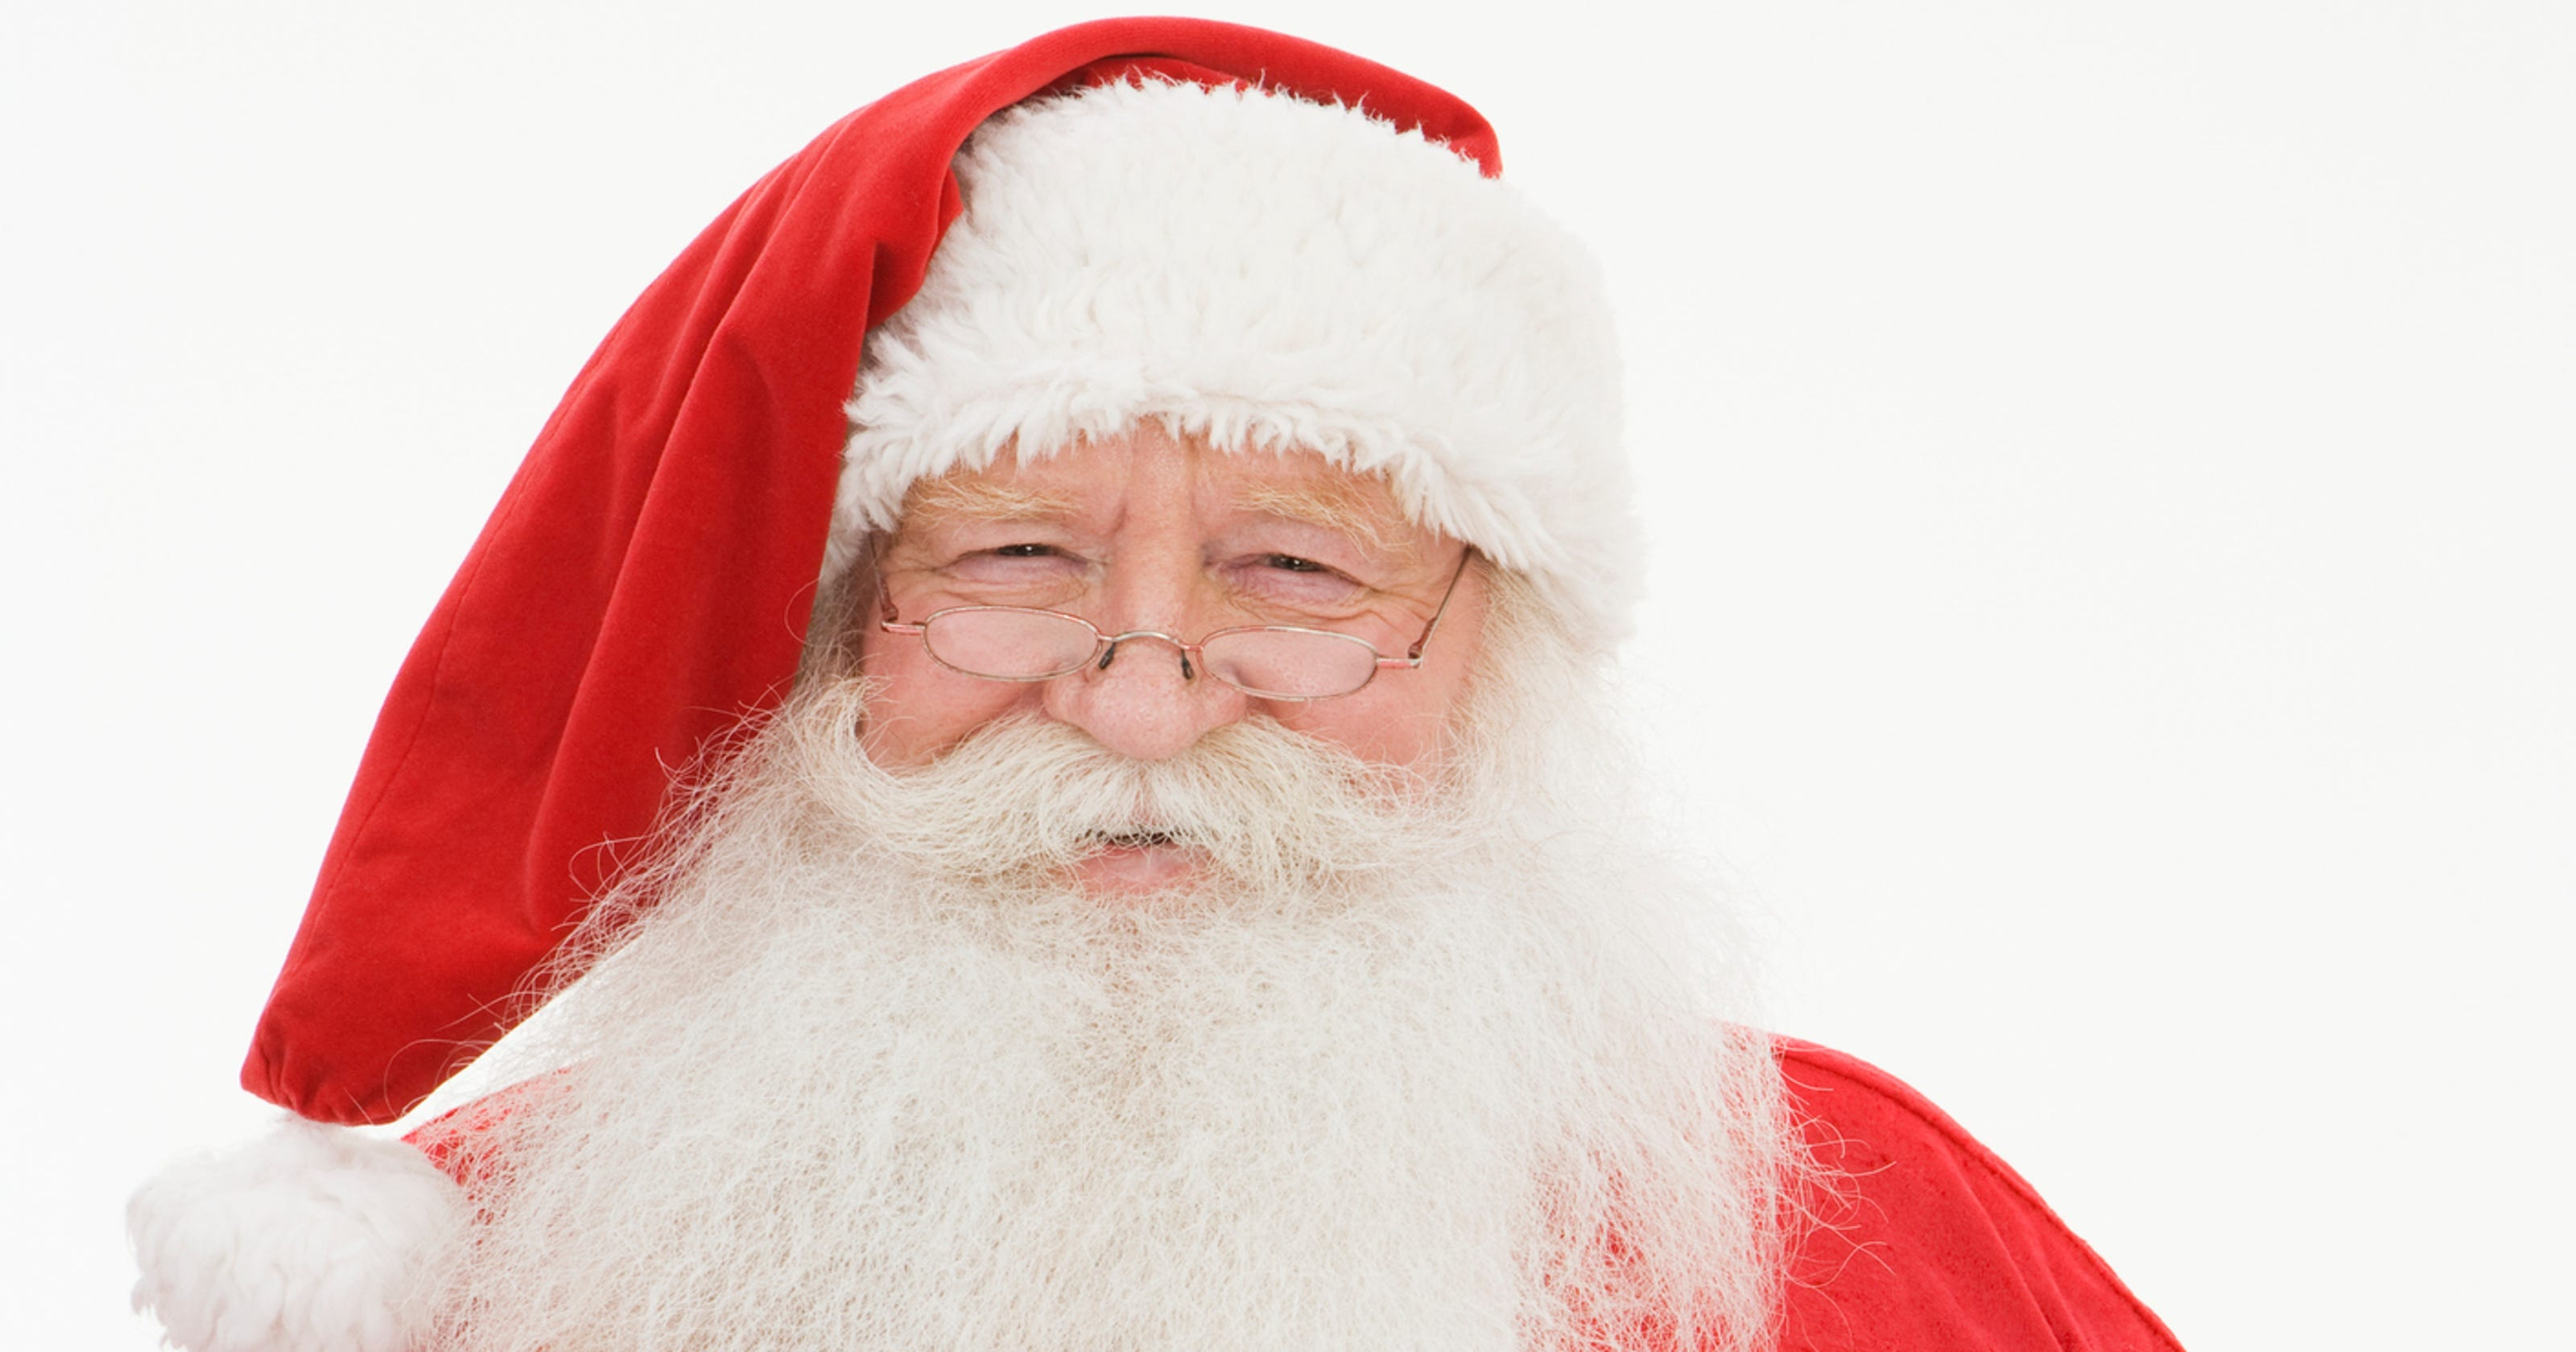 30-plus places to see, take photos with Santa in Phoenix area